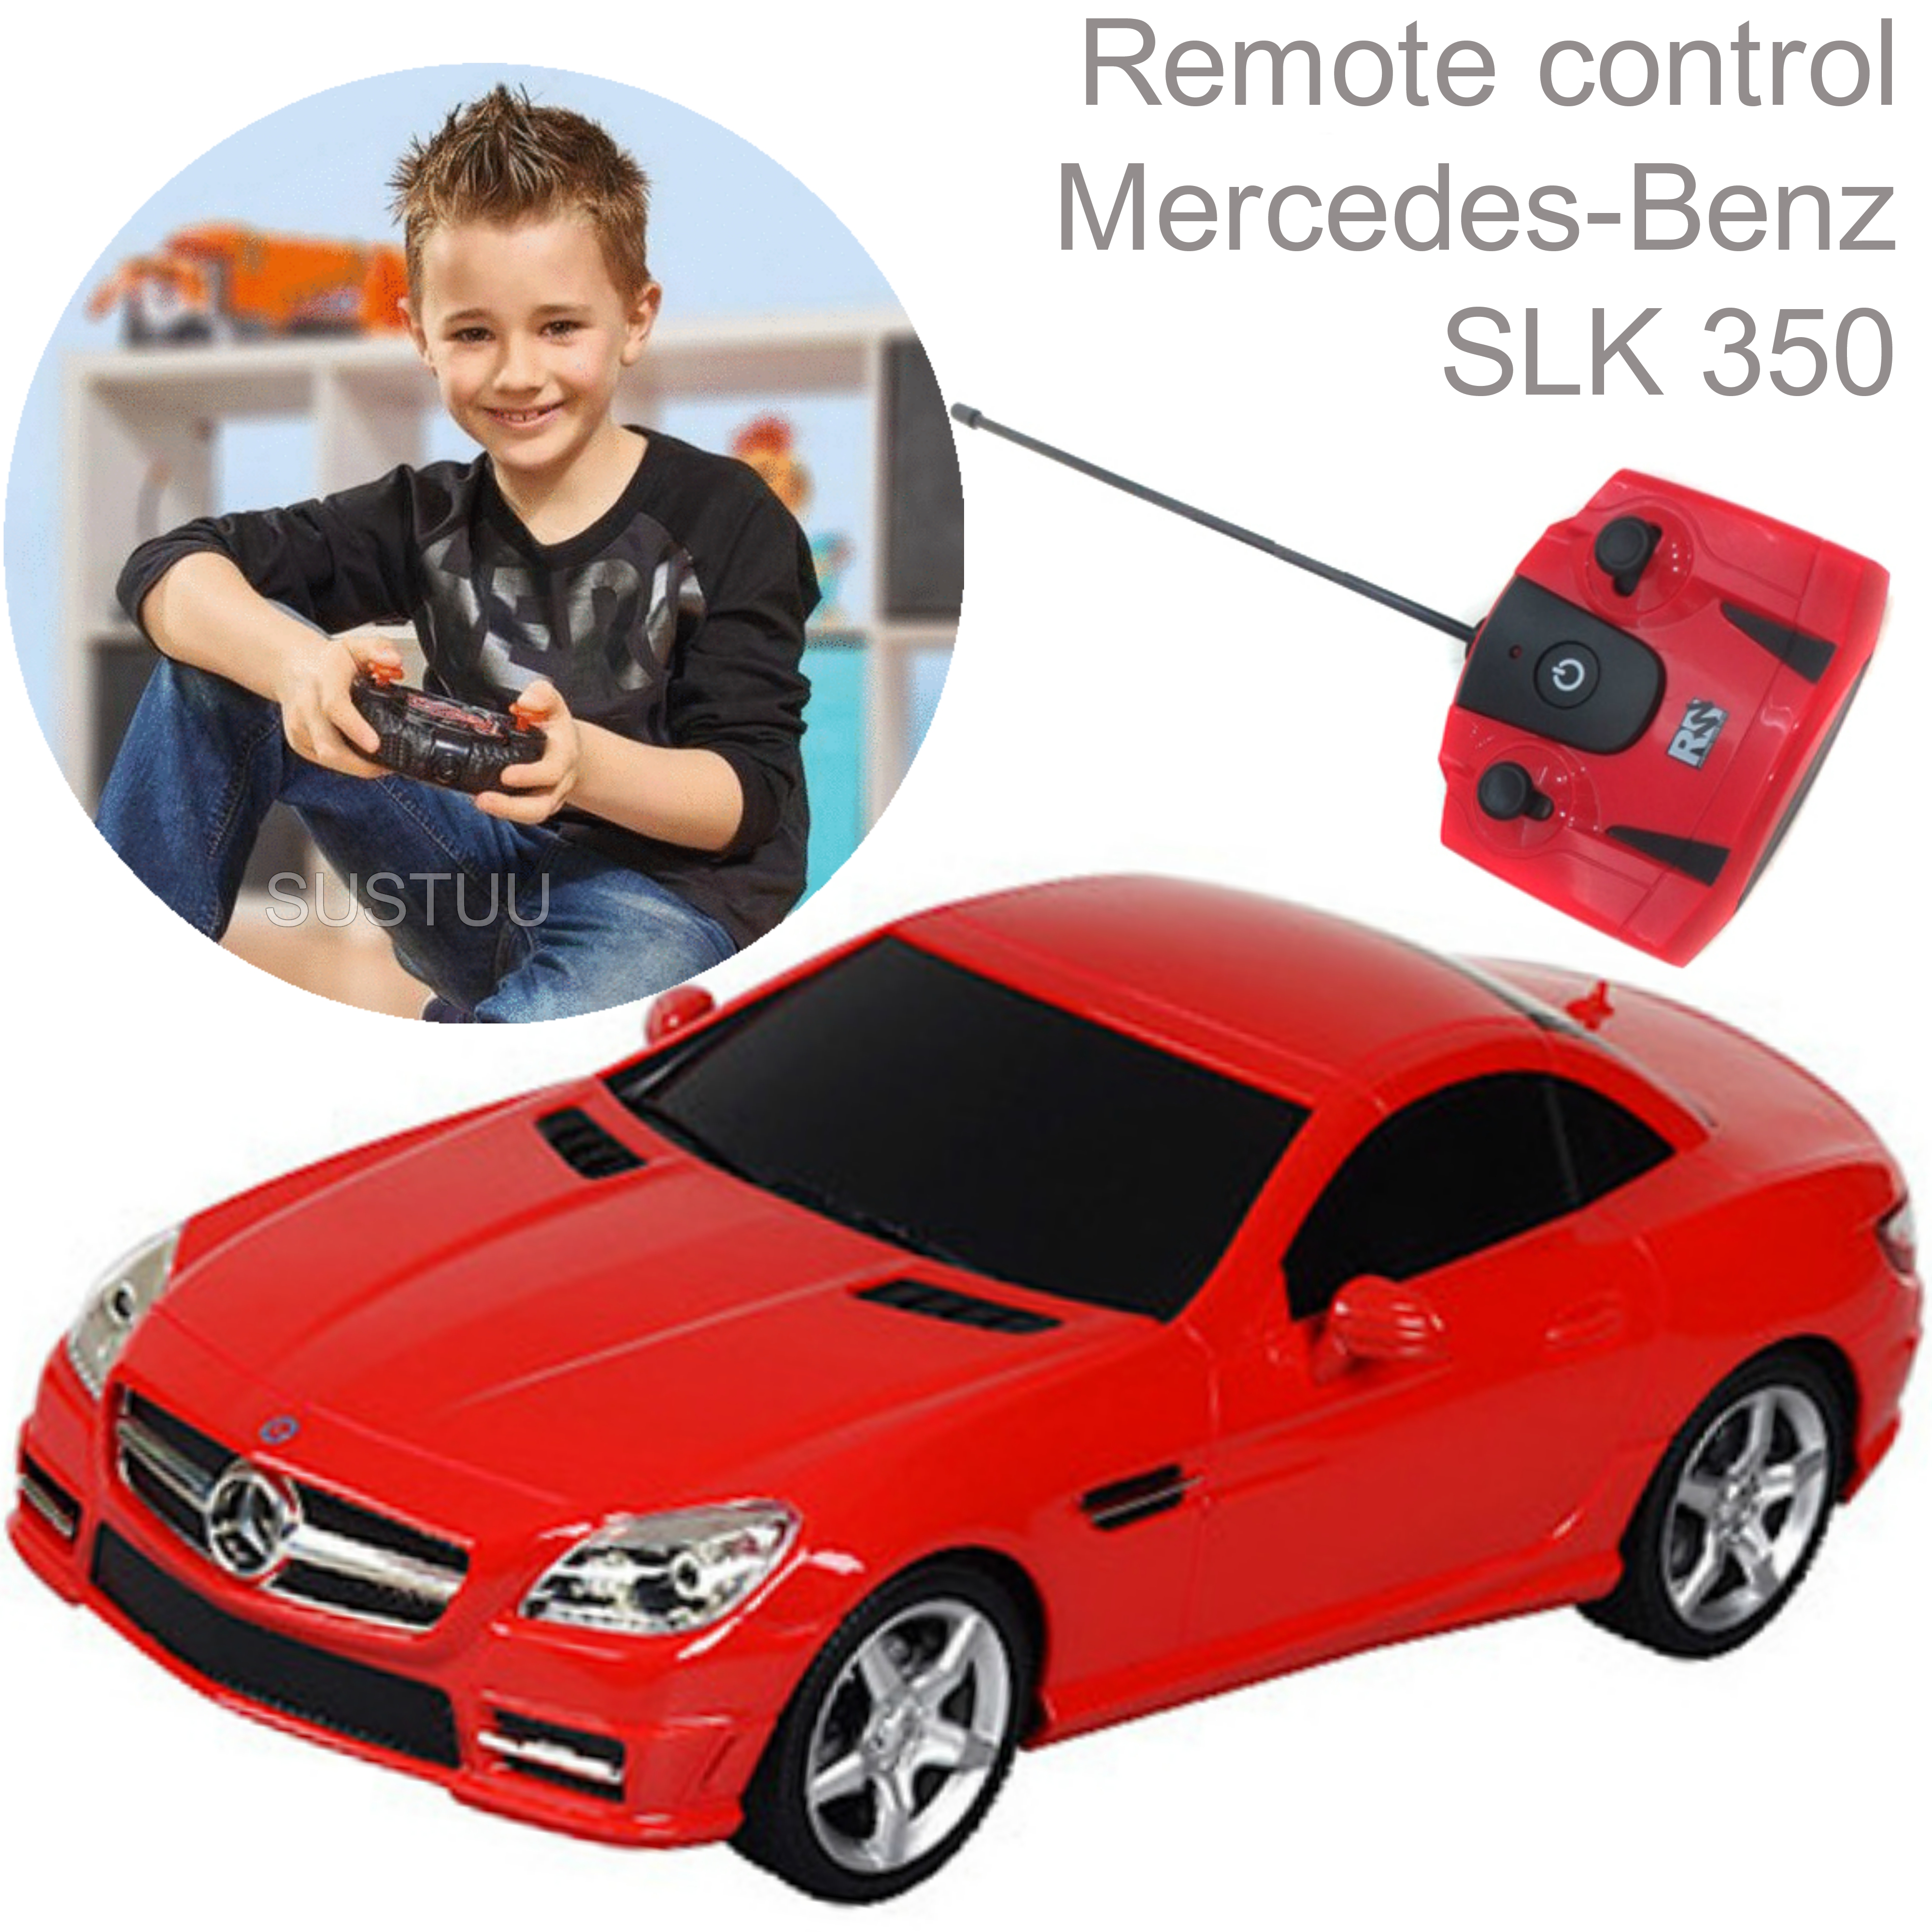 Remote Control Toy Car | Kids Model With Lights-Mercedes-Benz SLK 350 | 1:24 Scale | Red